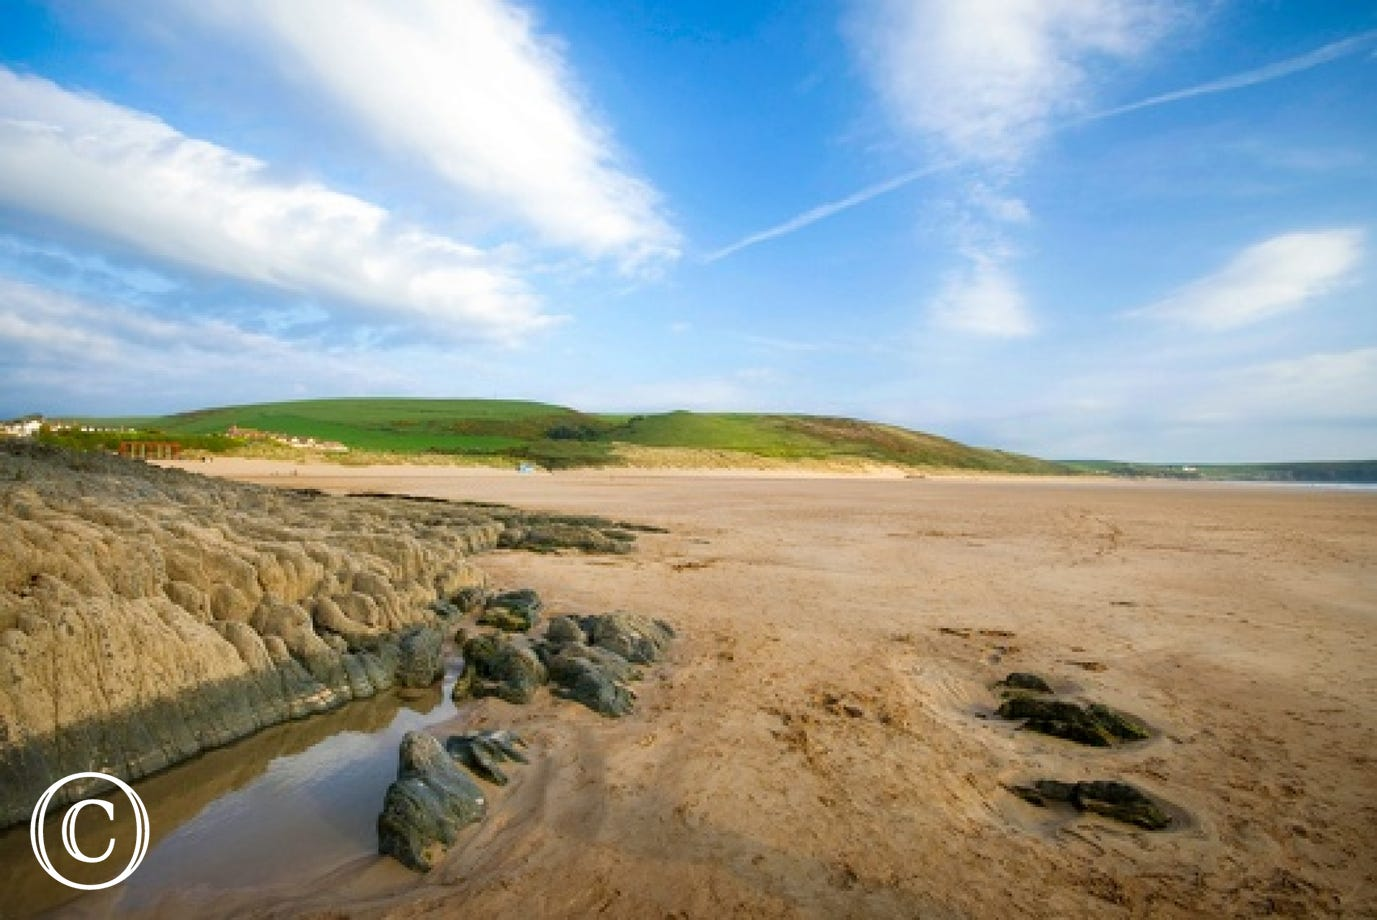 The award winning beach of Woolacombe is just a short walk away from the property